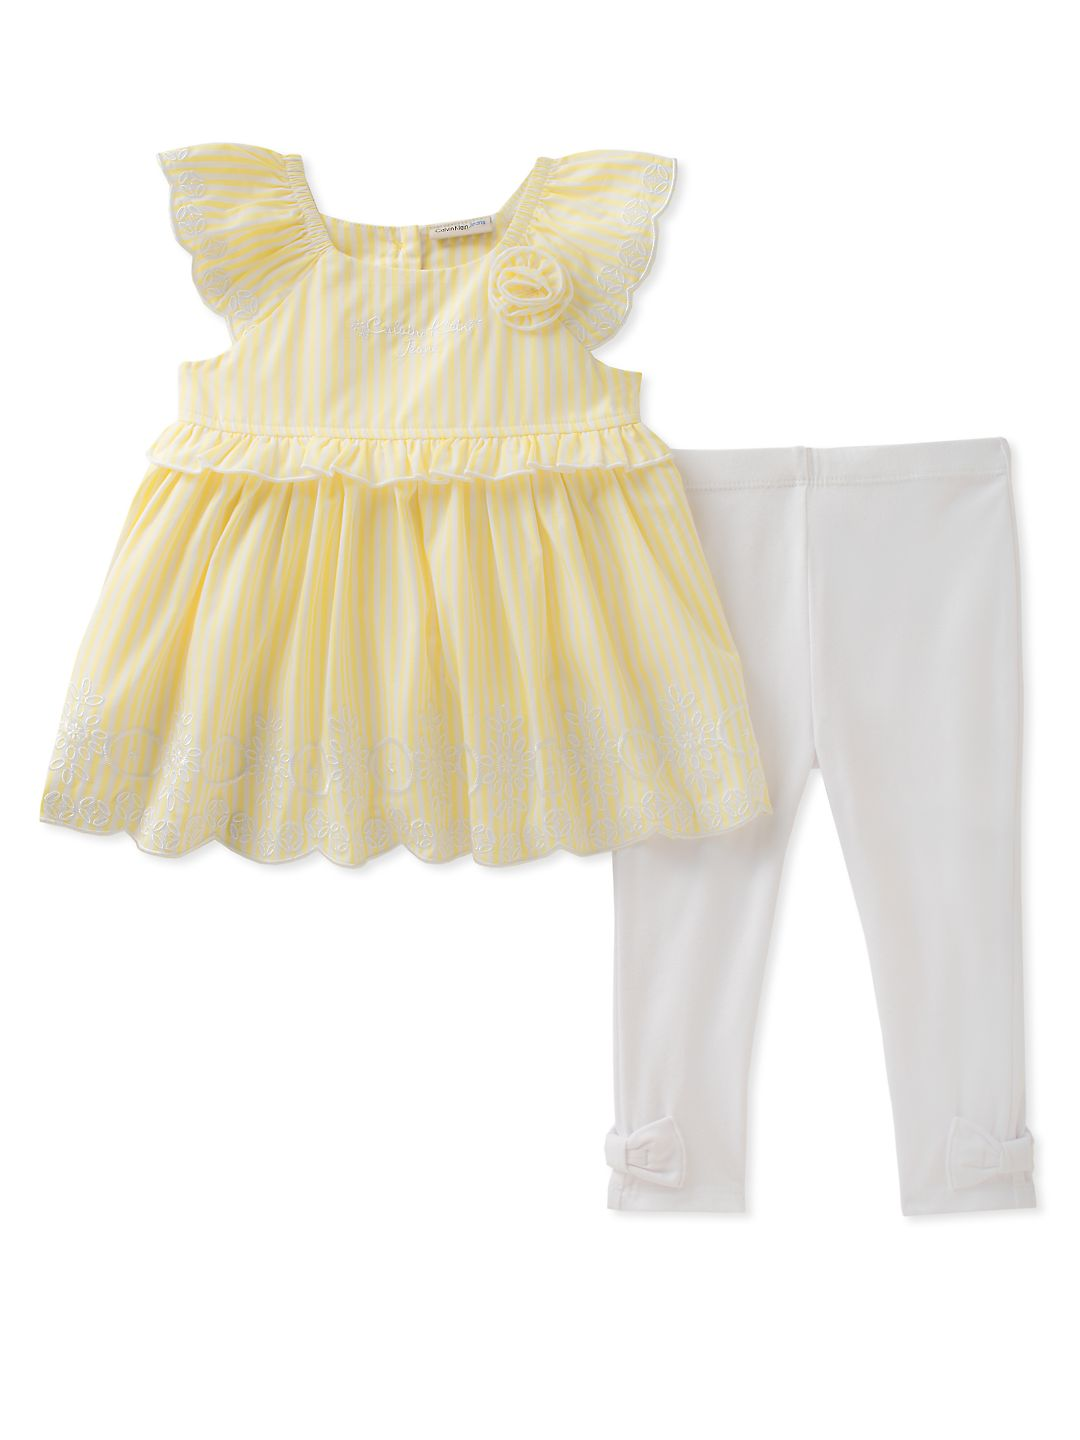 Baby Girls' Two-Piece Ruffle Tunic and Leggings Set